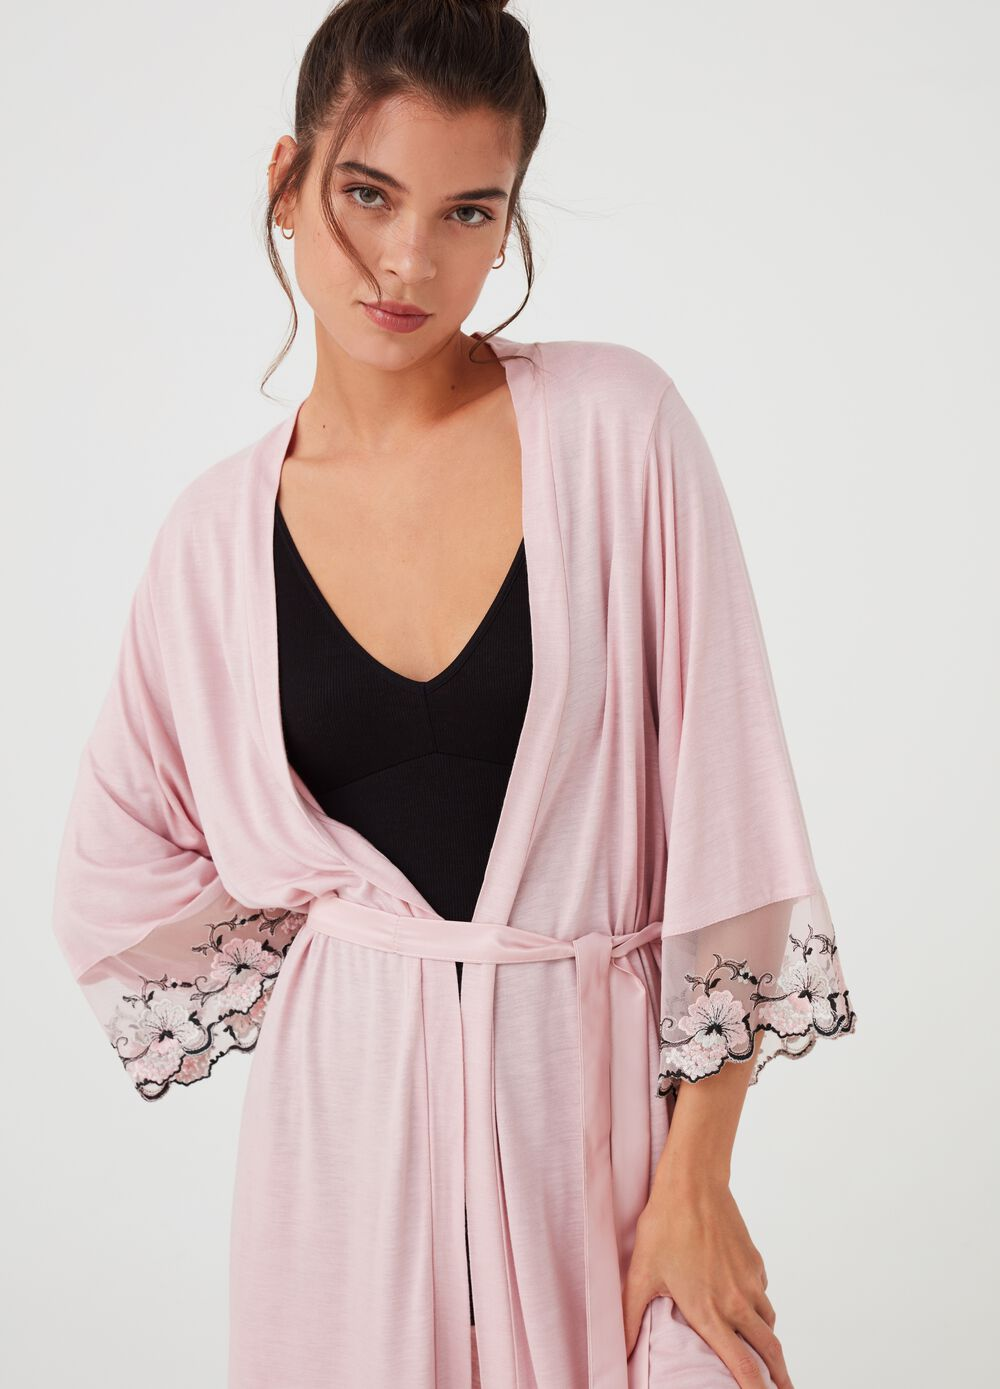 Dressing gown with lace insert